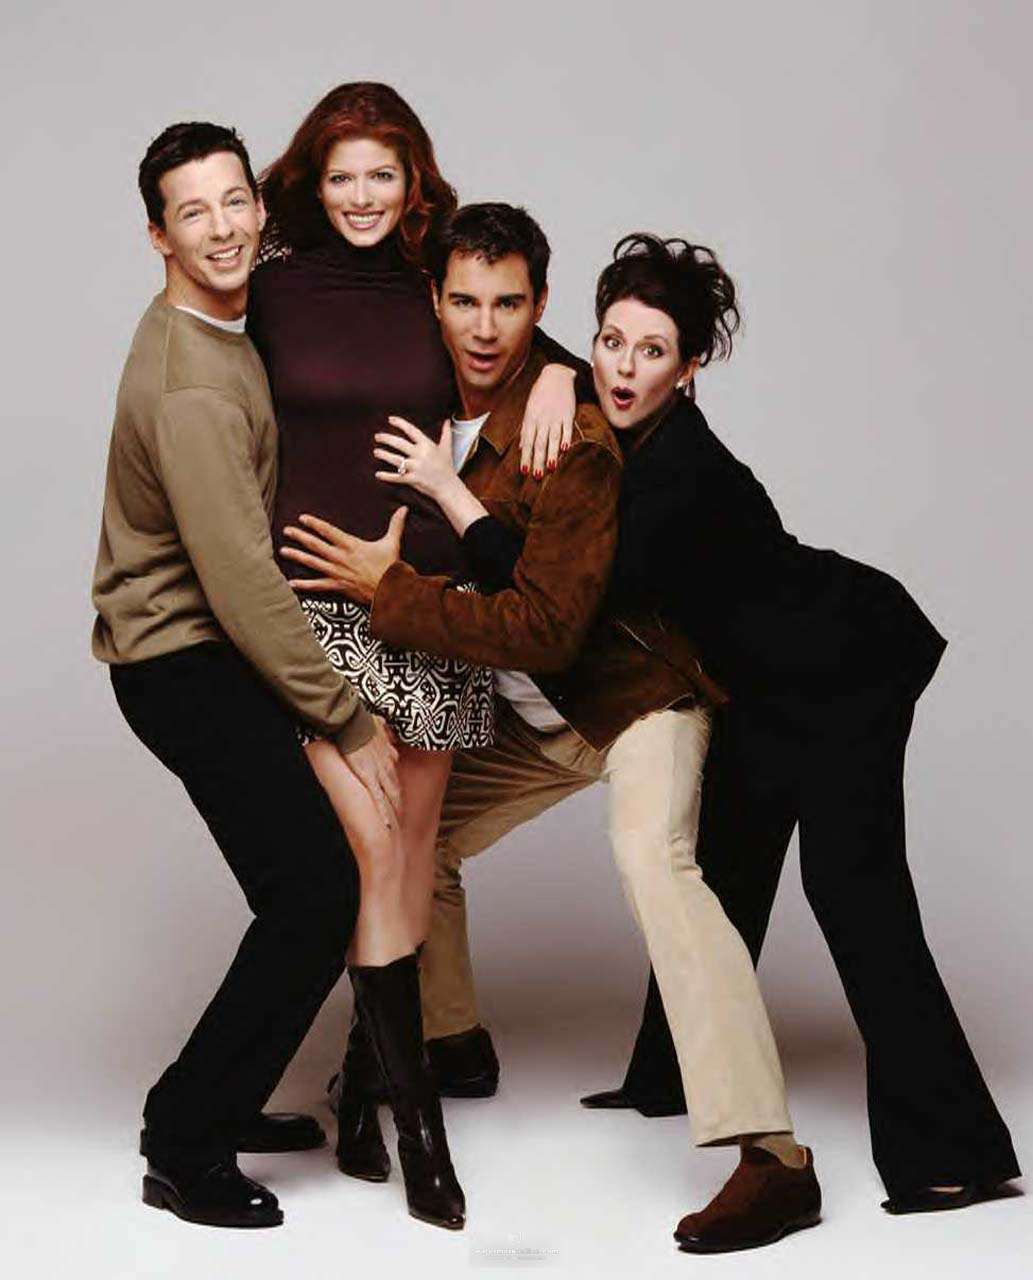 By 1999, Will & Grace had established itself as a breakout hit. It would win umpteen Emmys, and change hearts and minds, through 2006. (L-R) Sean Hayes, Debra Messing, Erik McCormack, Megan Mullally.